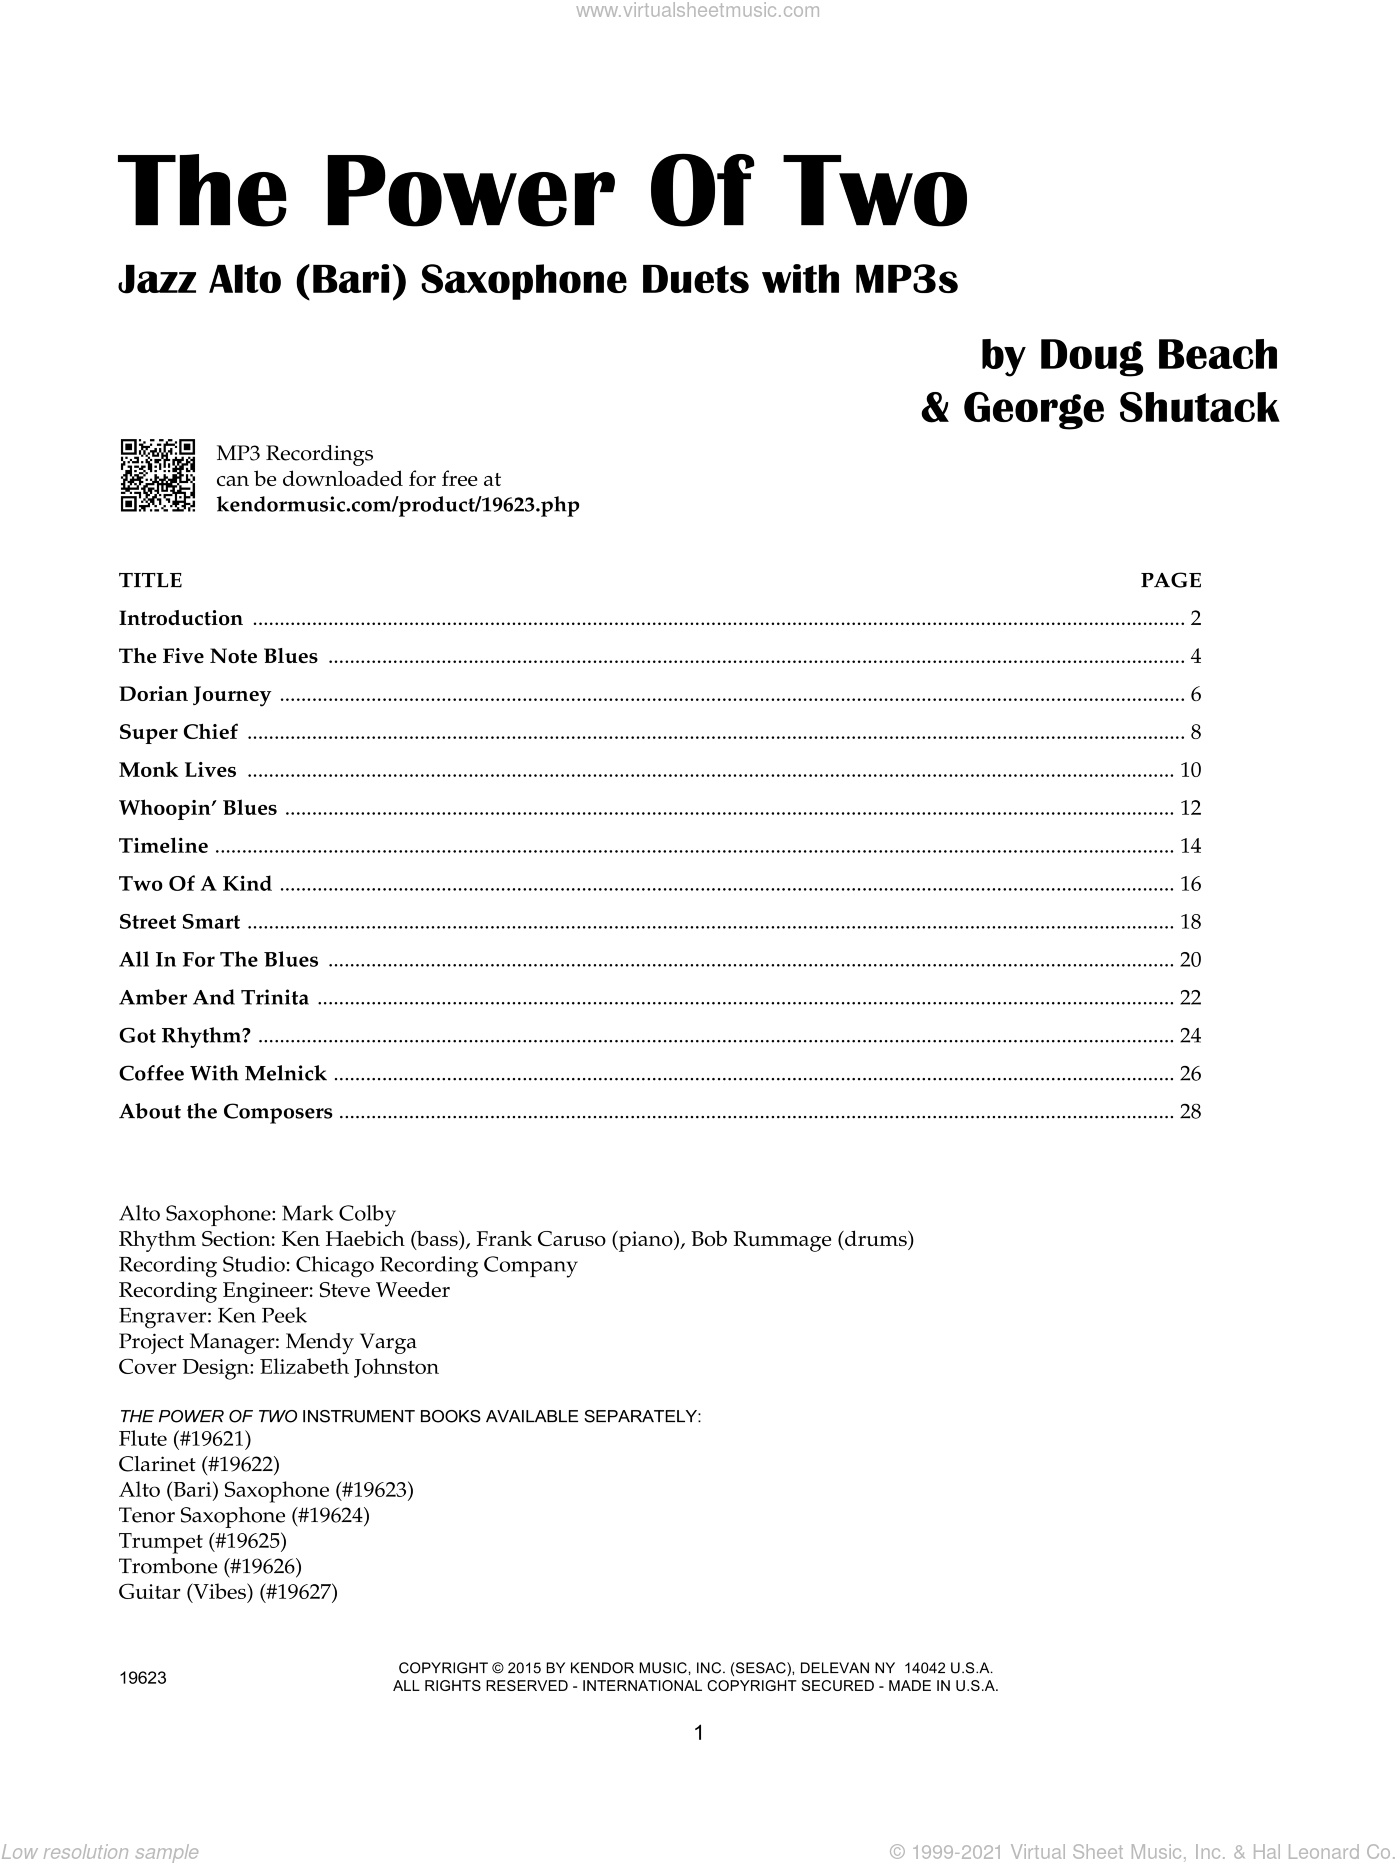 The Power Of Two - Alto (Bari) Saxophone sheet music for two alto saxophones by Doug Beach and George Shutack, intermediate duet